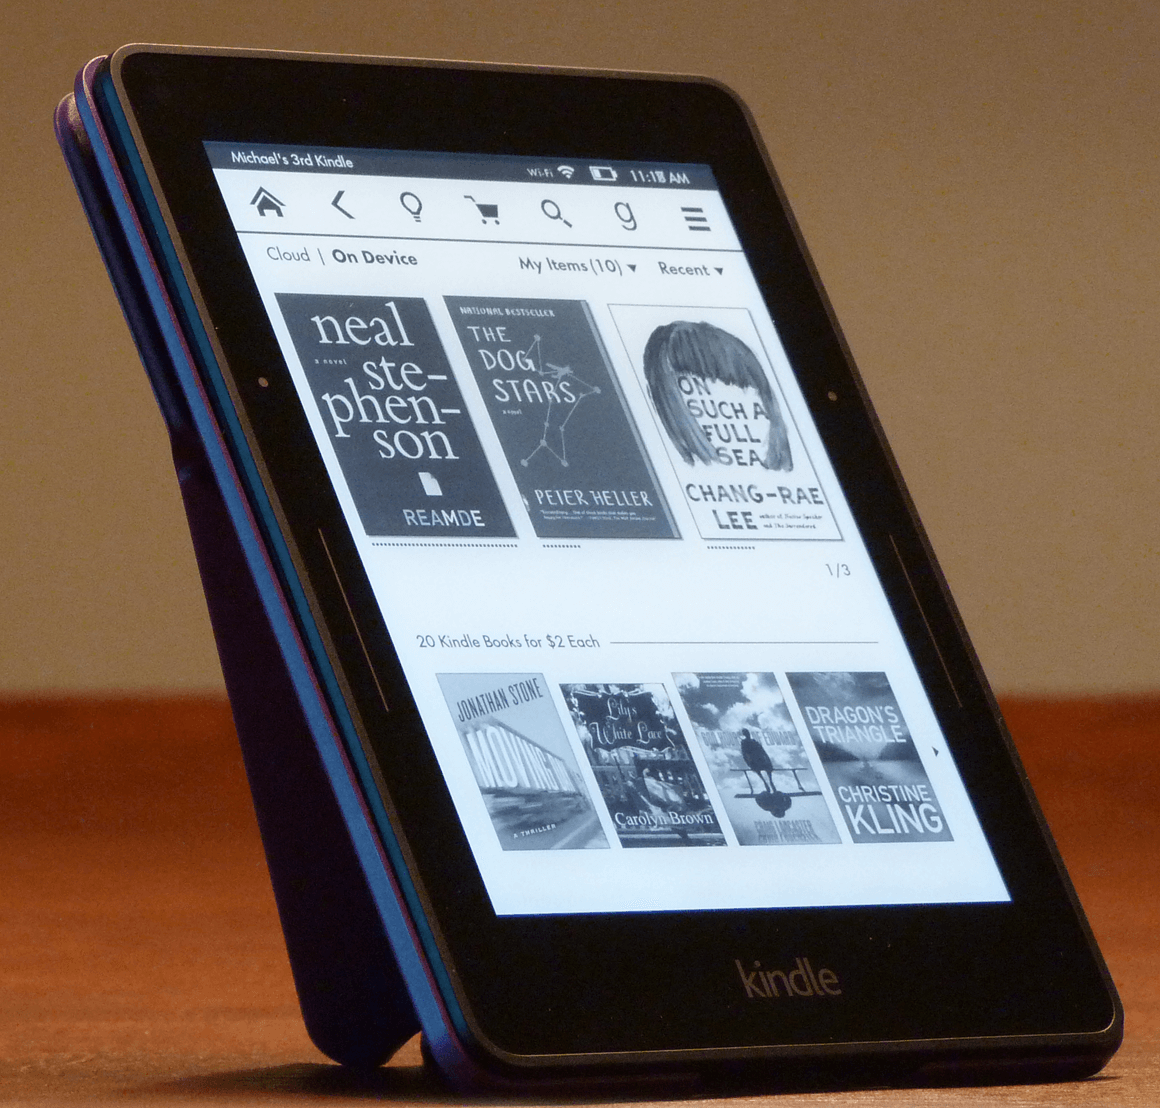 Use Product Details Page to Share Kindle Book